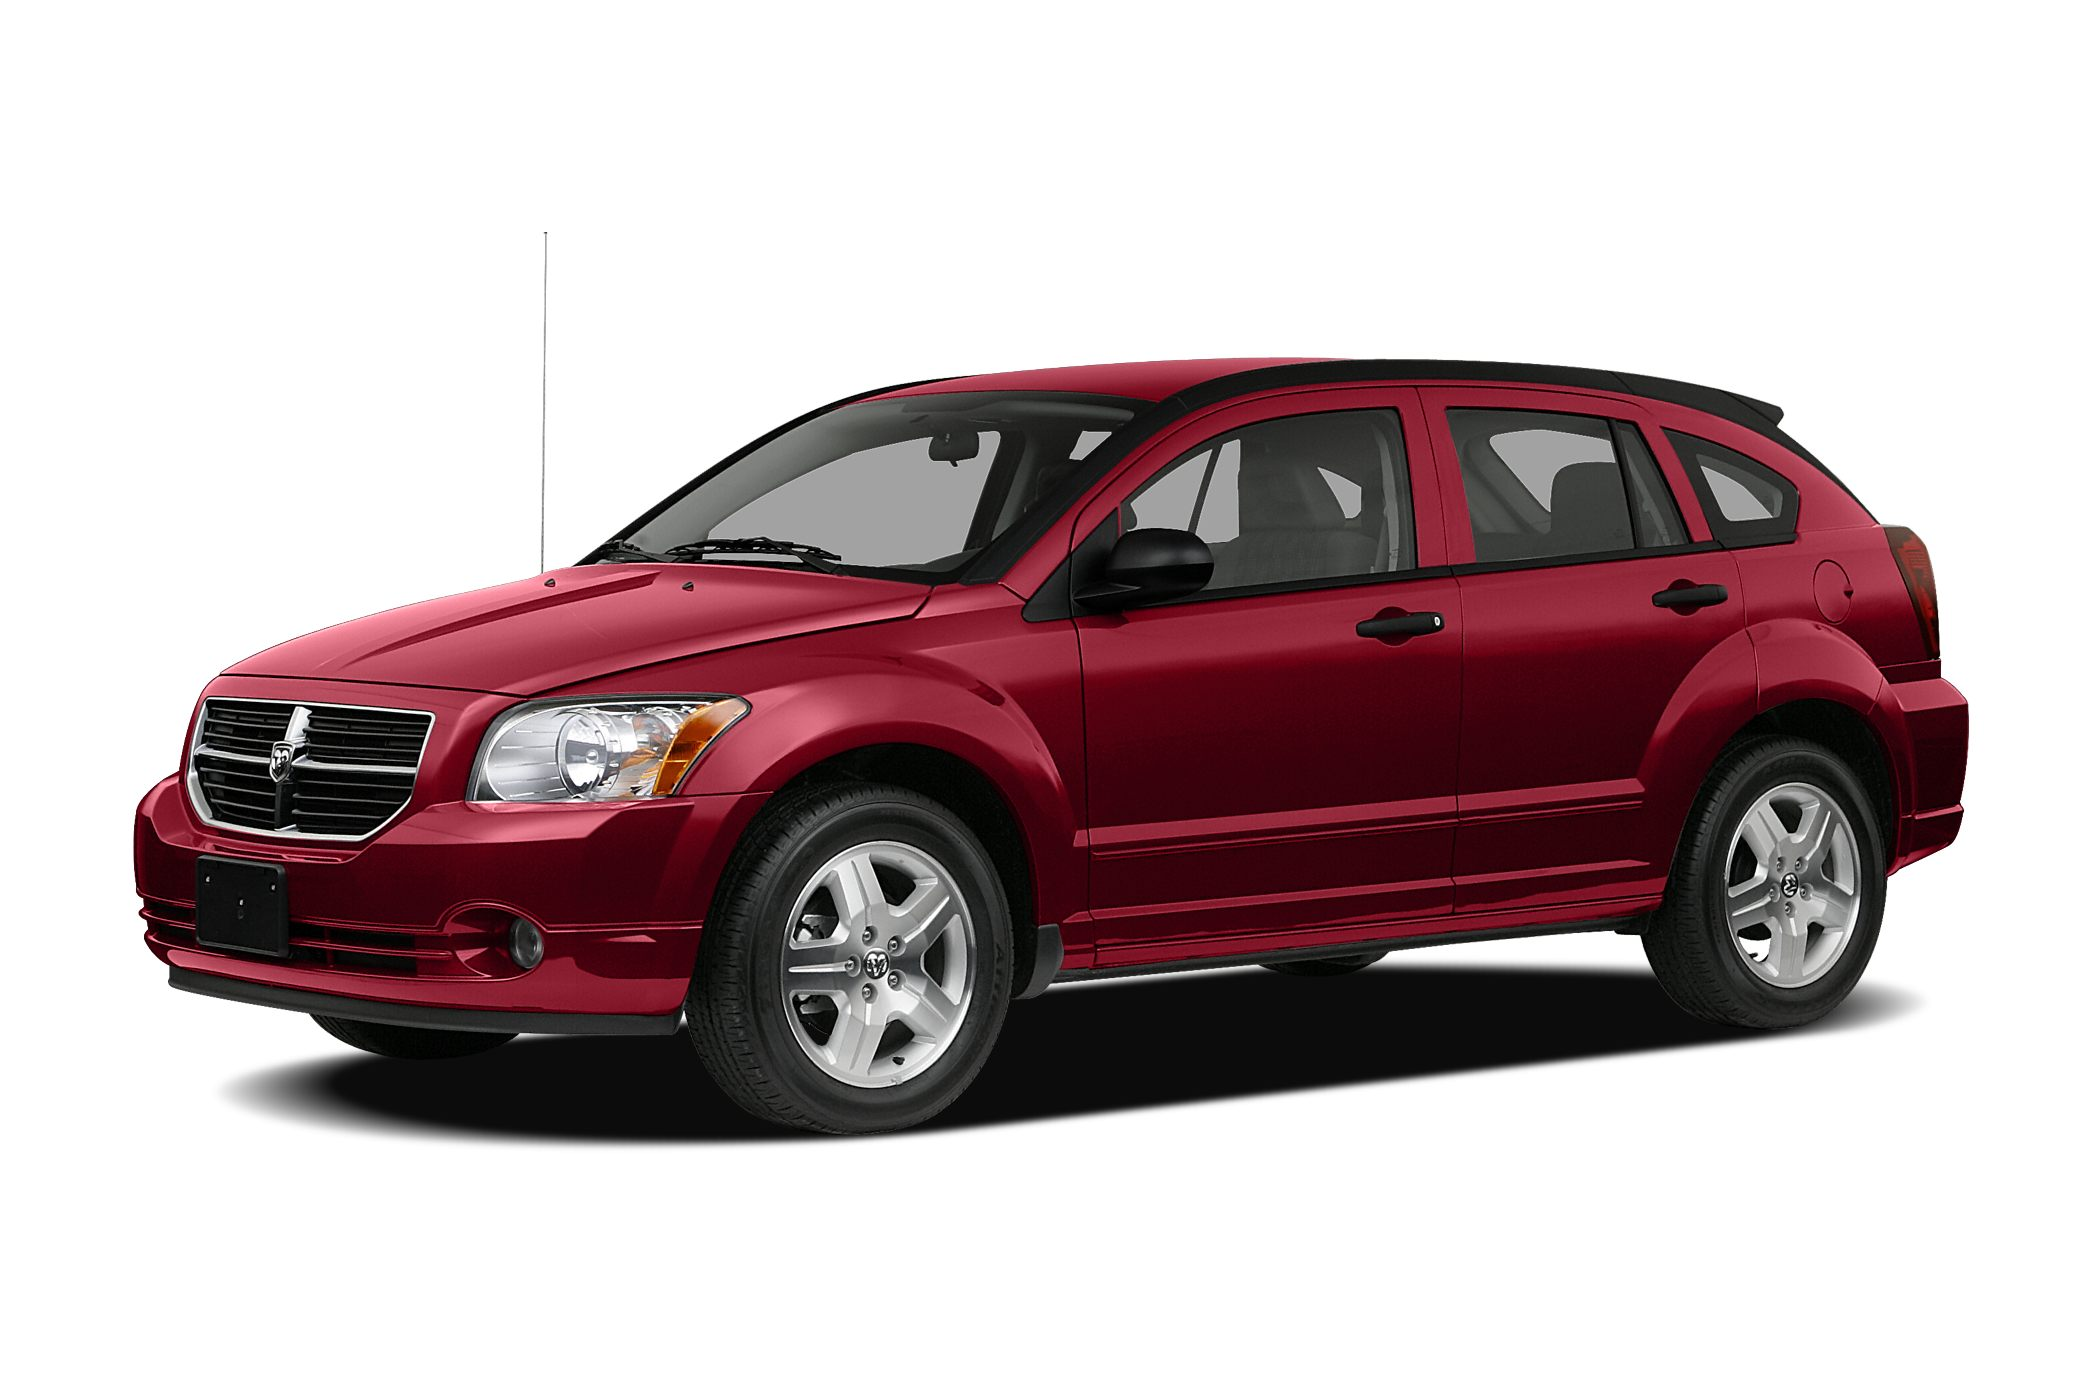 2008 Dodge Caliber SXT  COME SEE THE DIFFERENCE AT TAJ AUTO MALL WE SELL OUR VEHICLES AT WH